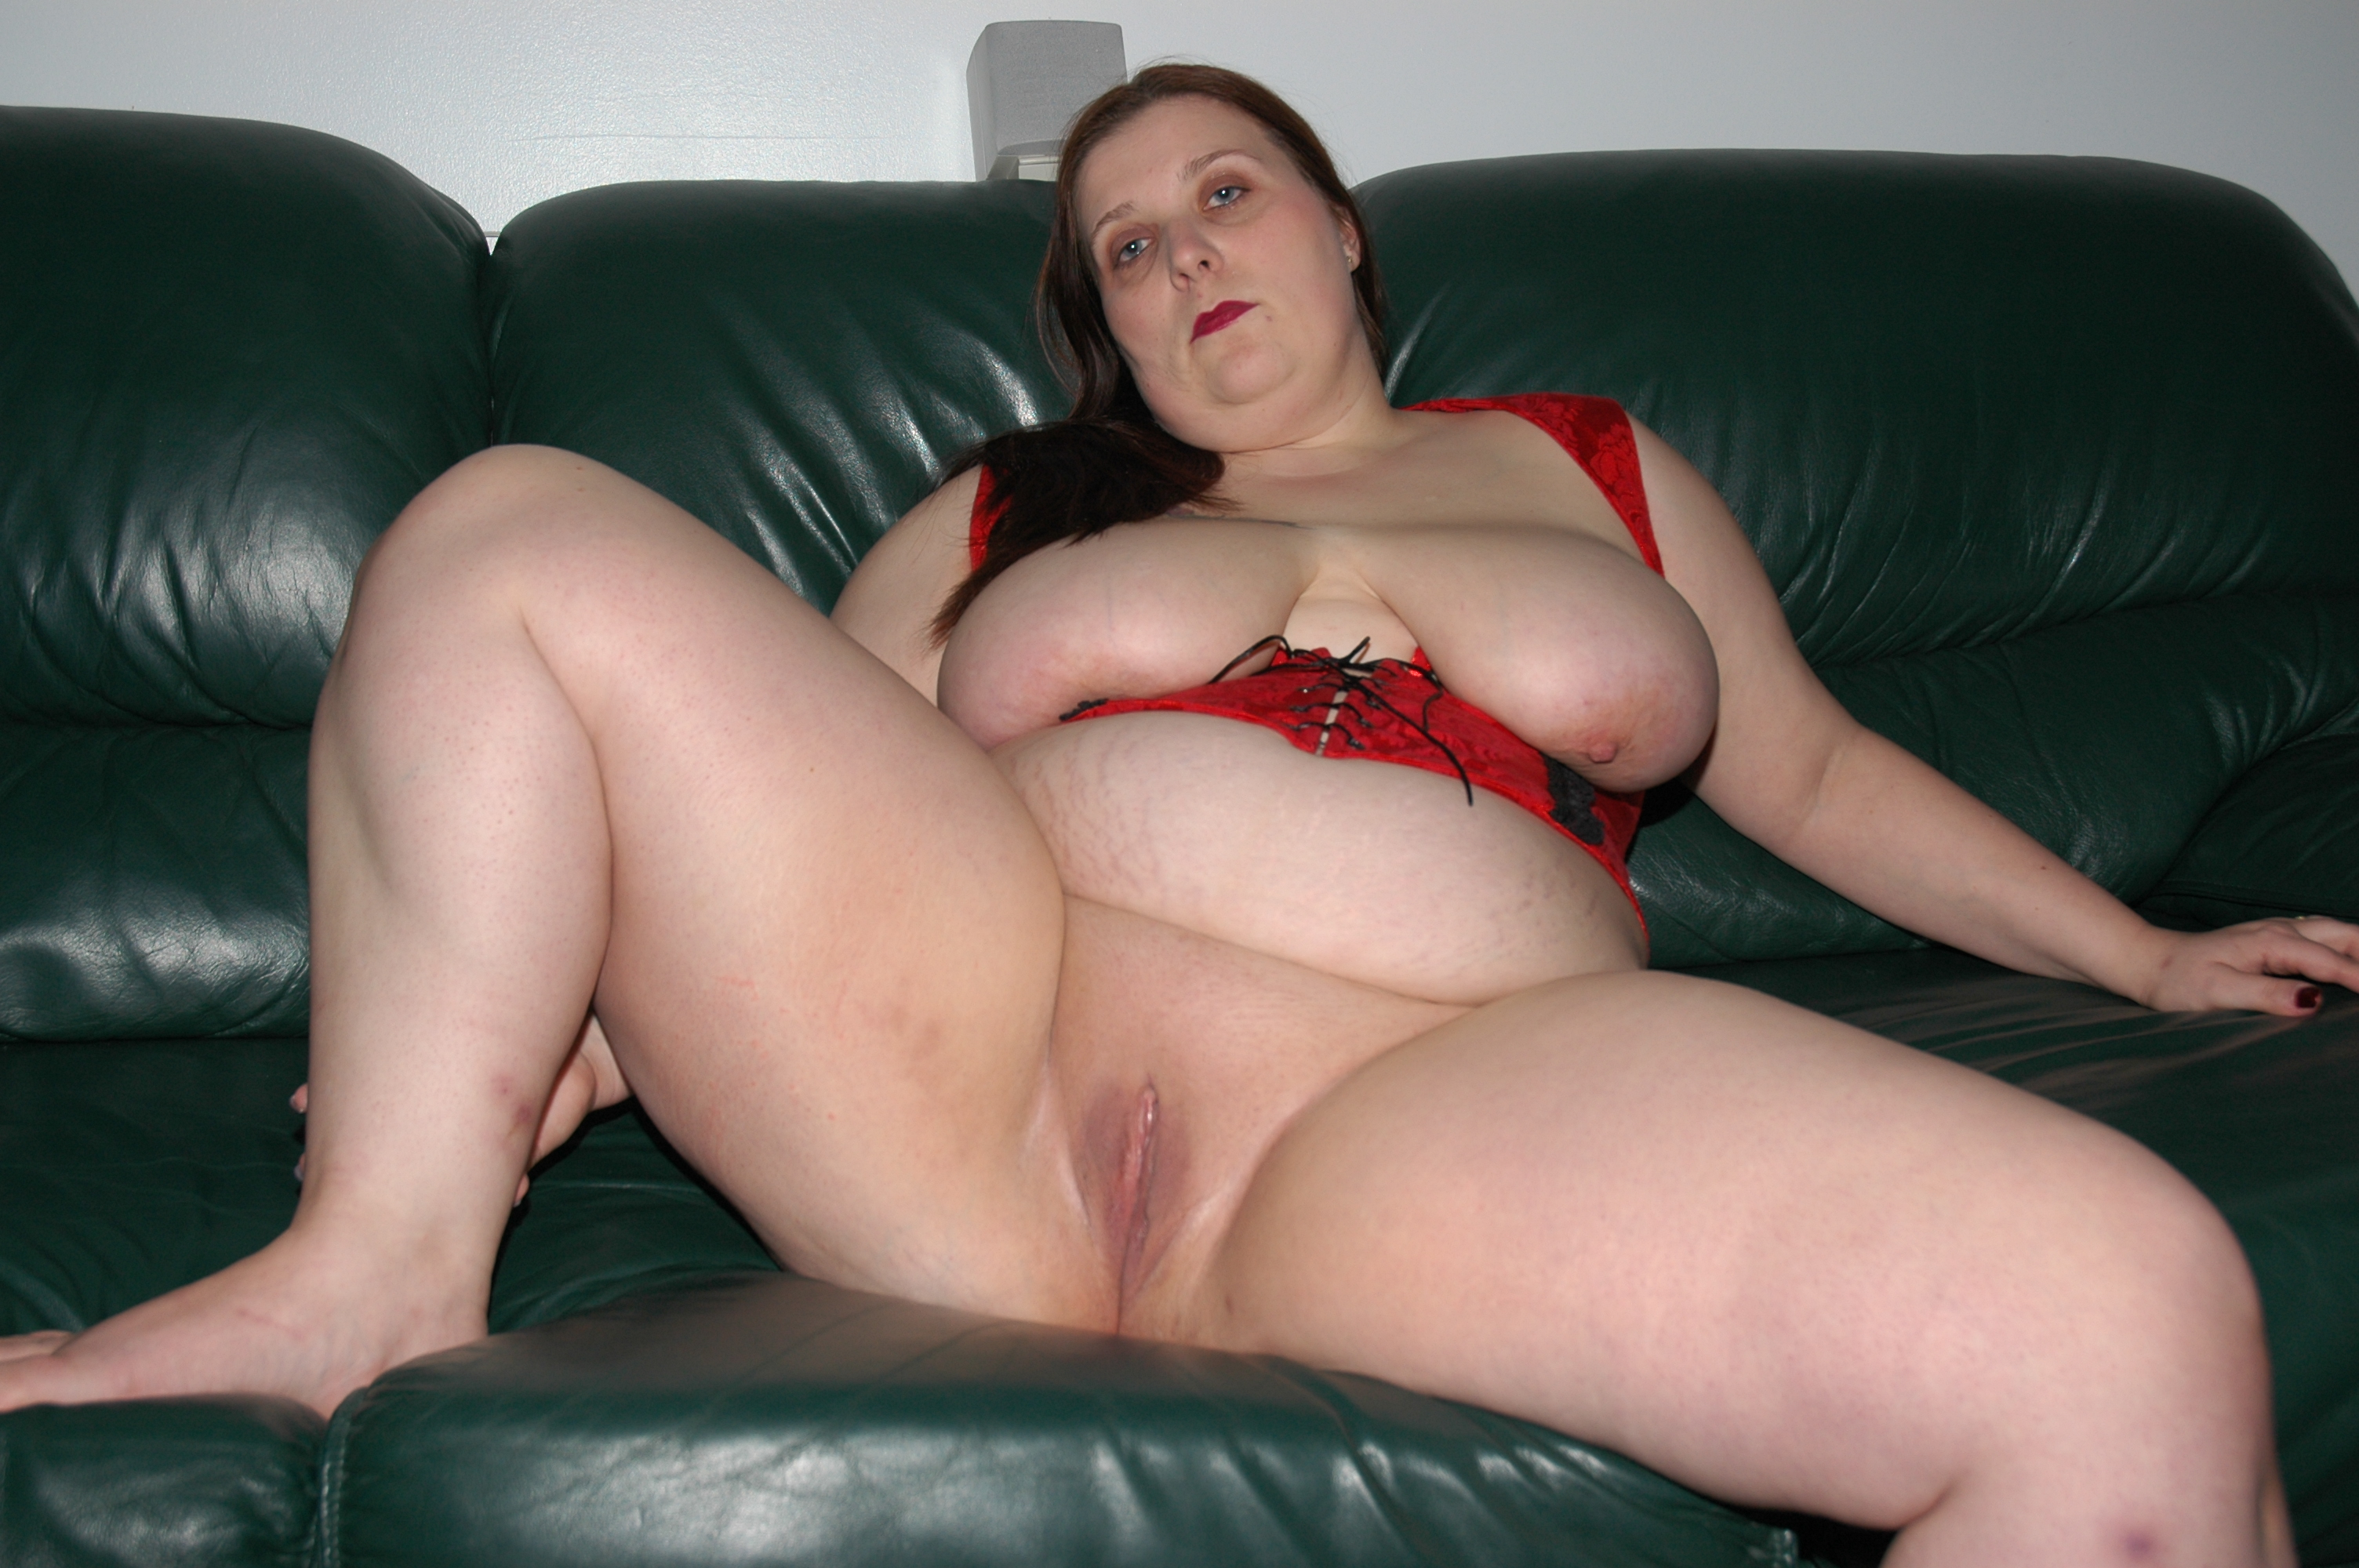 Free chubby mature women thumbs